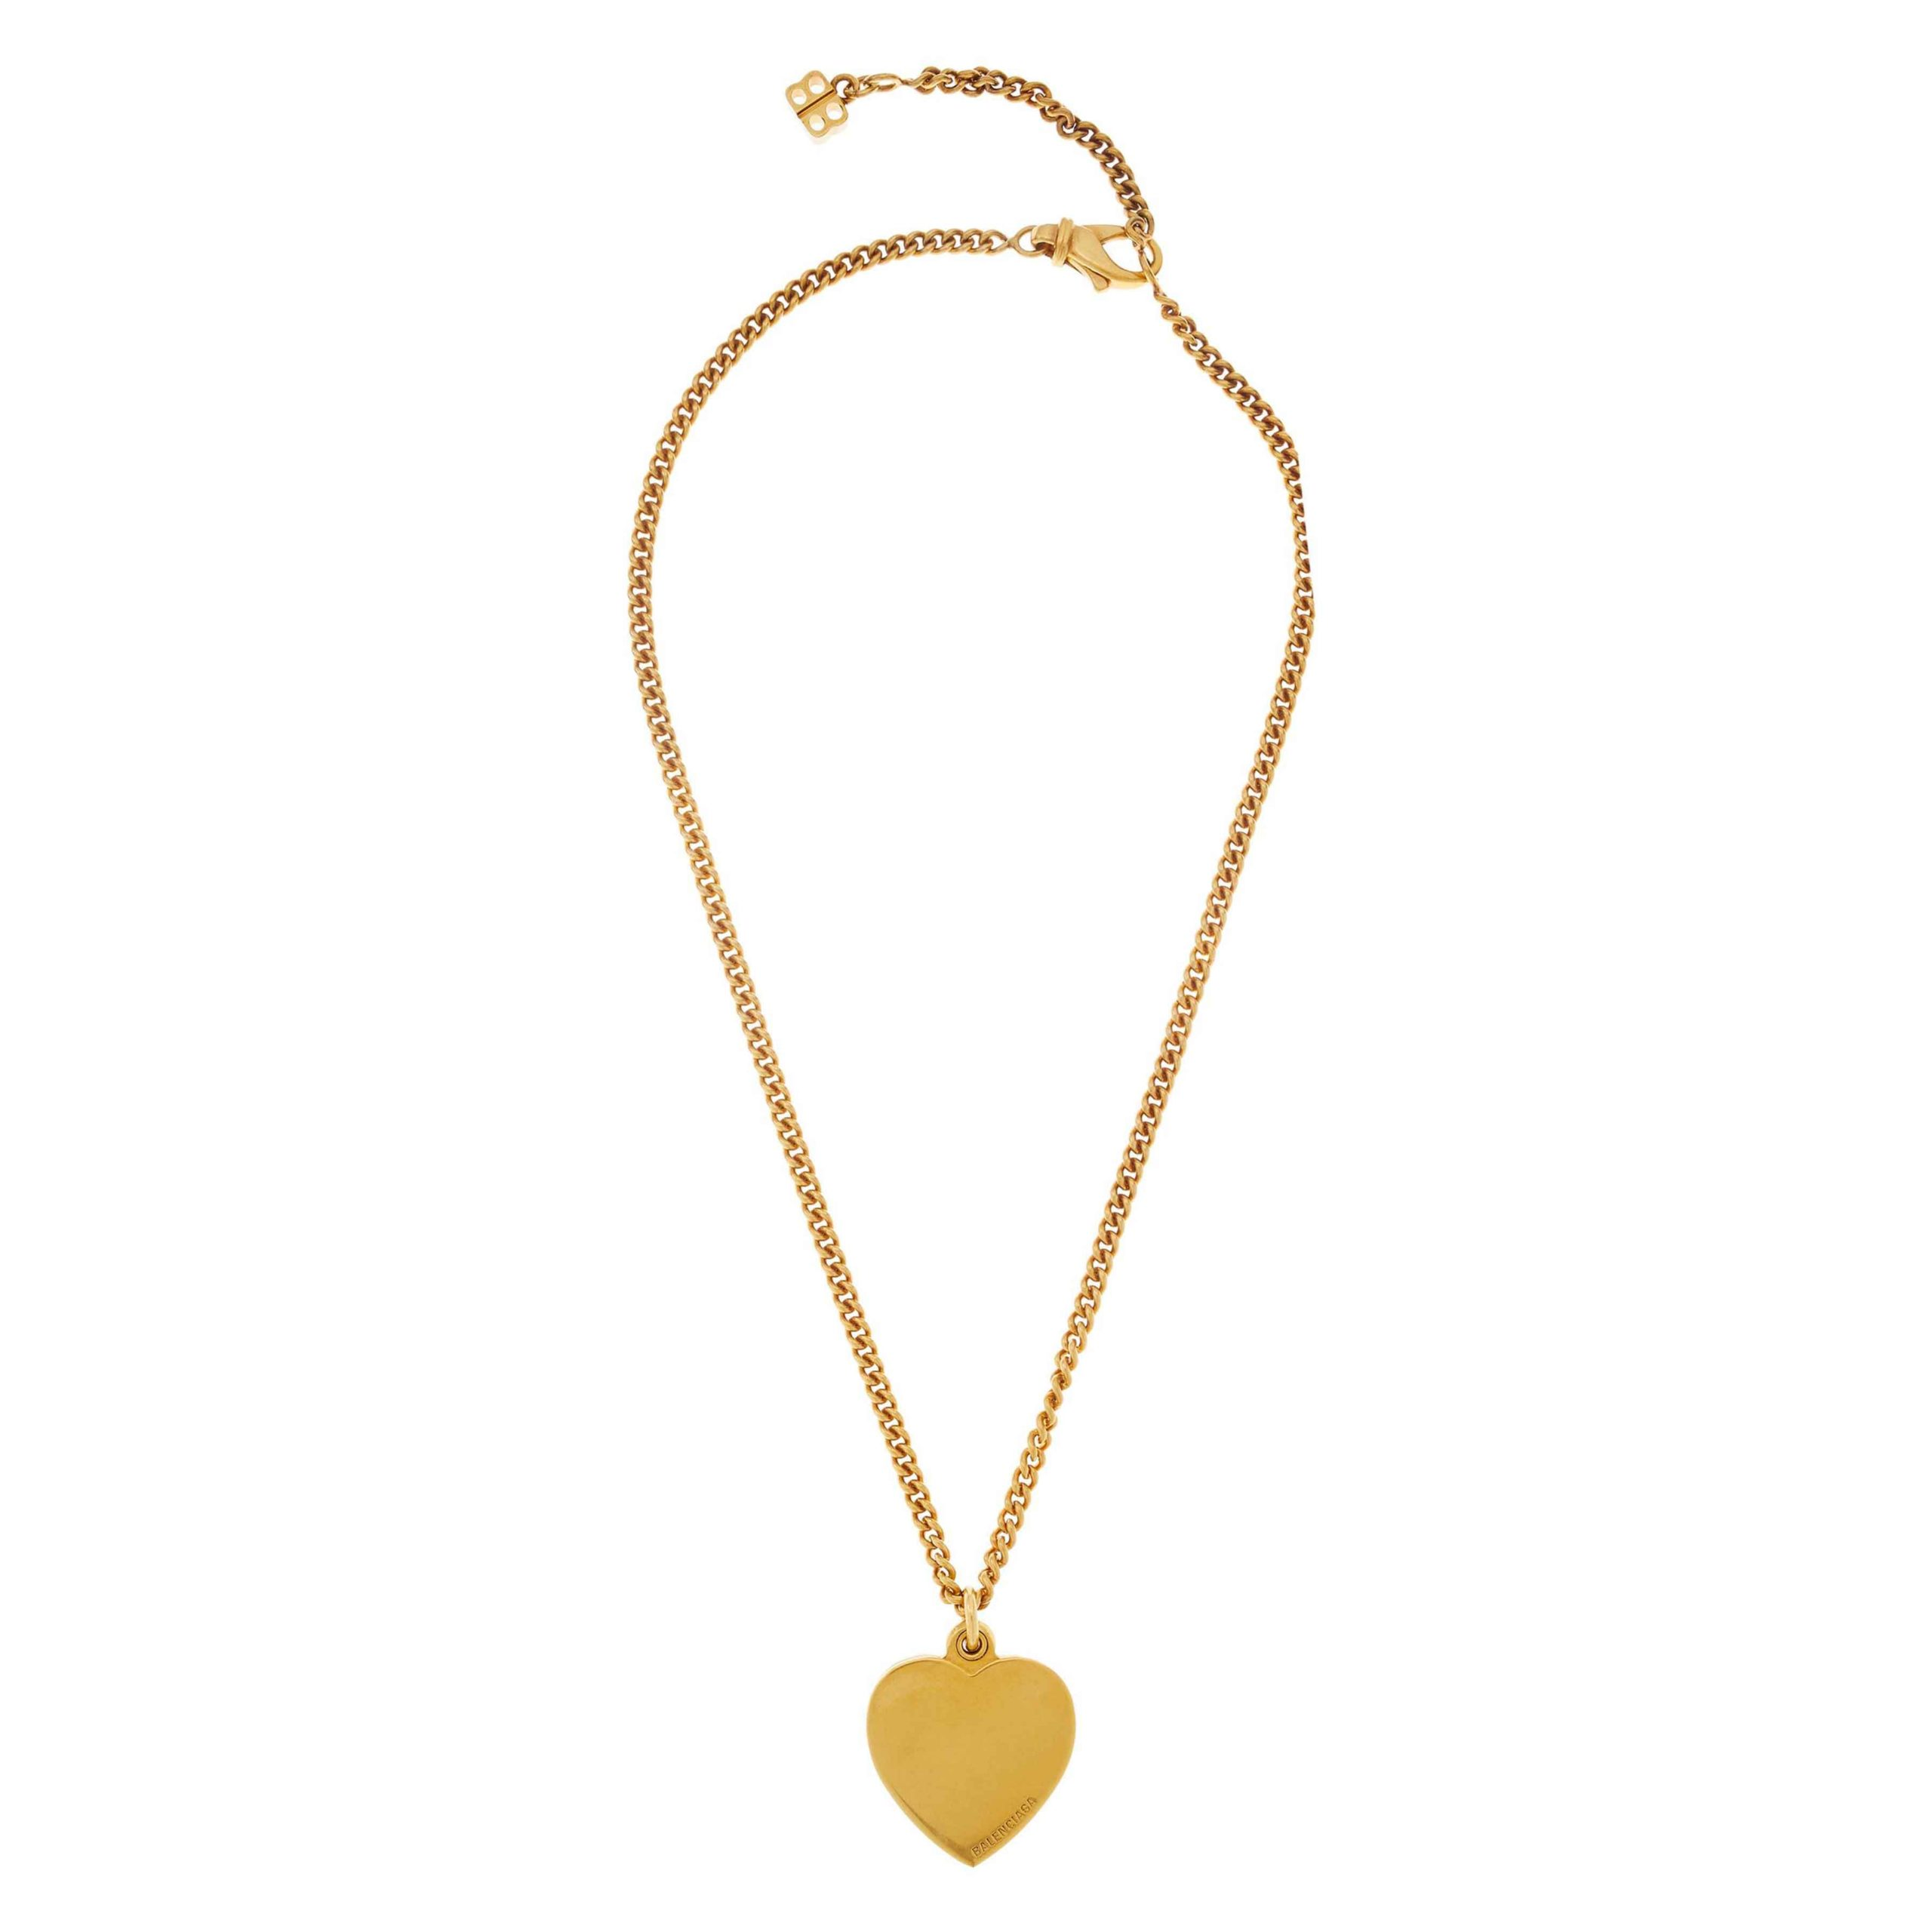 Balenciaga Heart Necklace